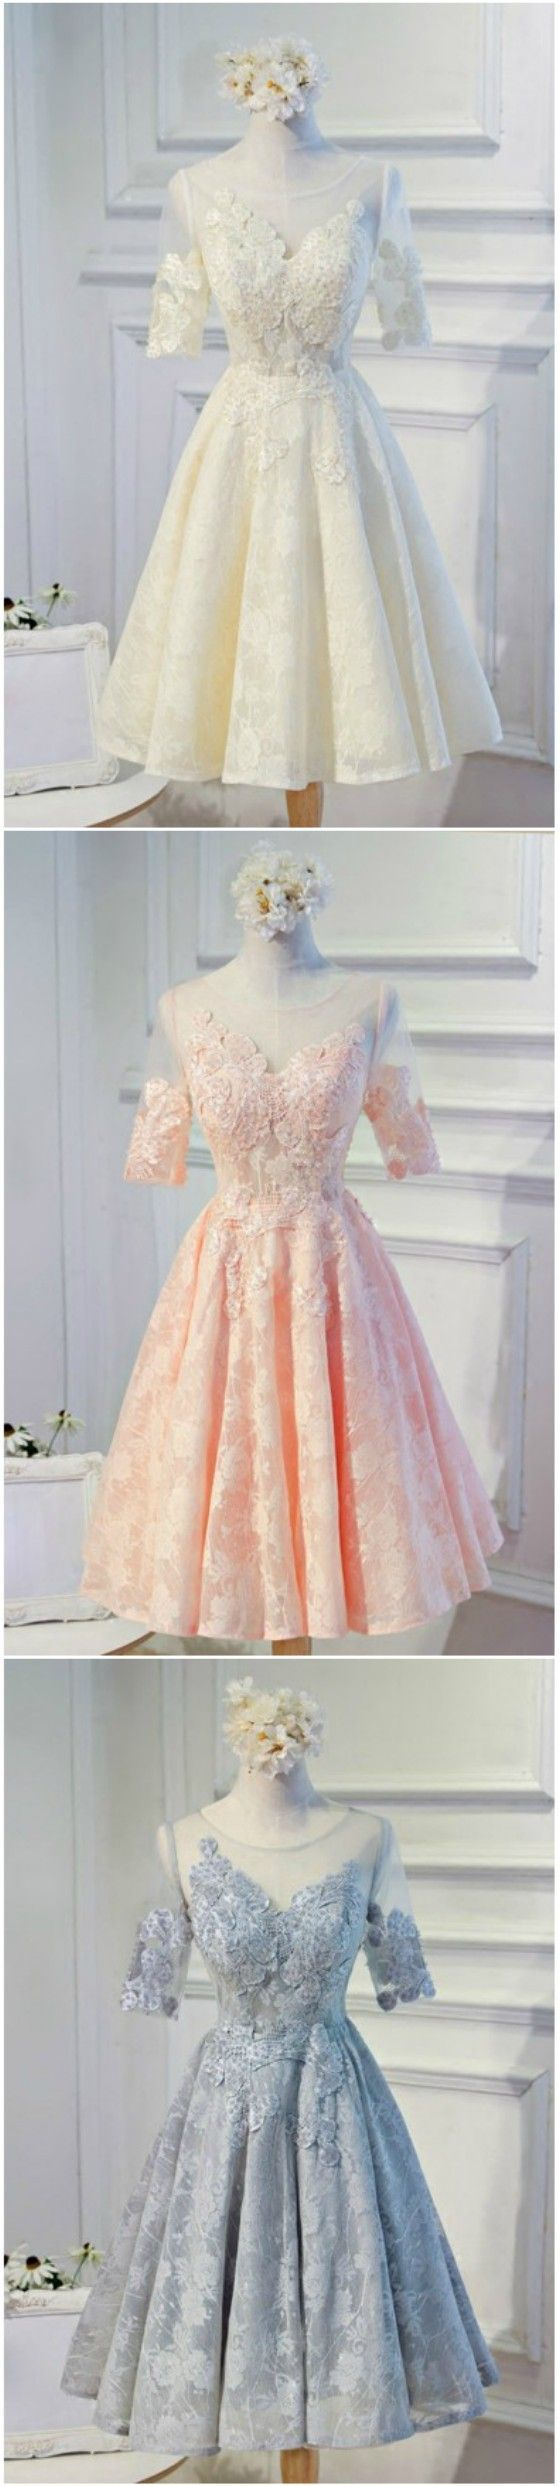 Vintage pink lace homecoming dresses with sleeves tea length tulle